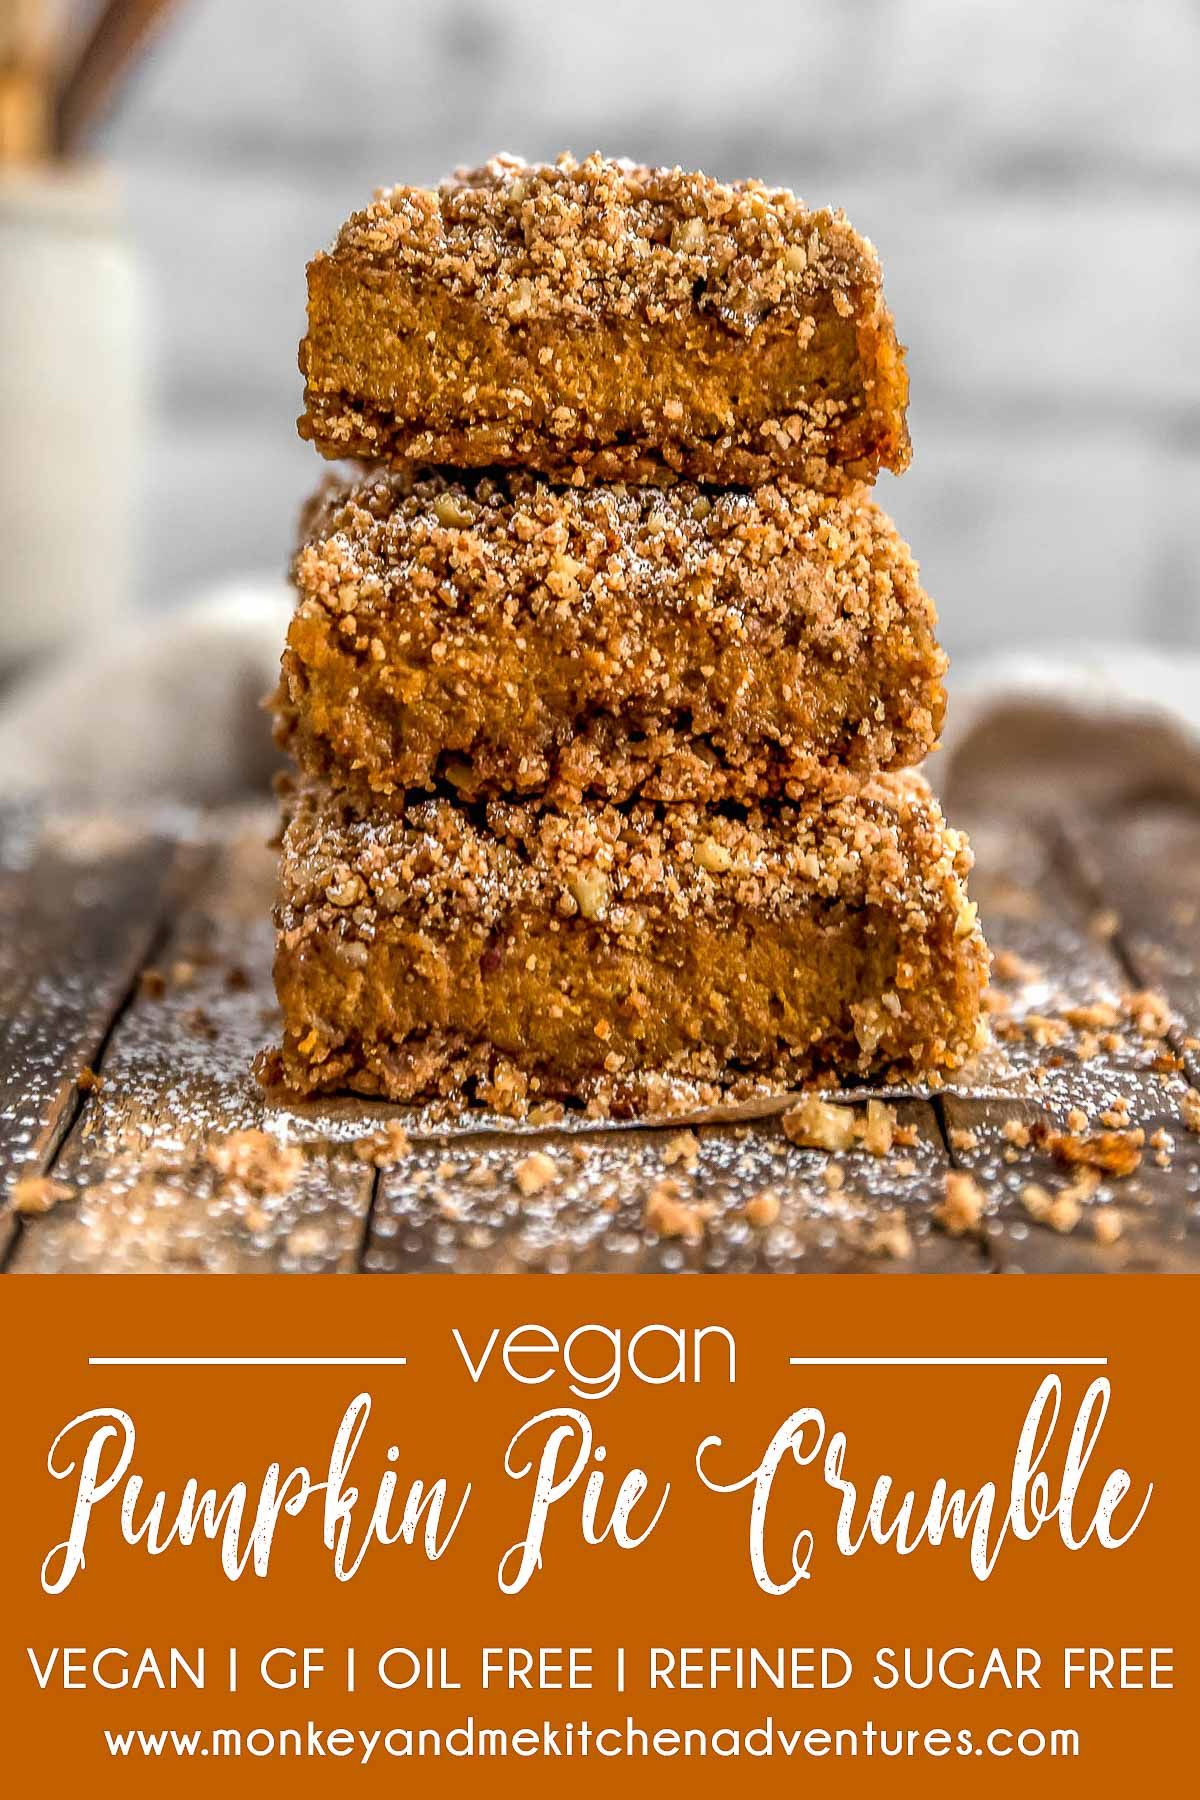 Dreamy Vegan Pumpkin Pie Crumble Velvety Pumpkin Pie And Decadent Crumble Cake Come Together In The Most Vegan Pumpkin Vegan Pumpkin Pie Vegan Dessert Recipes